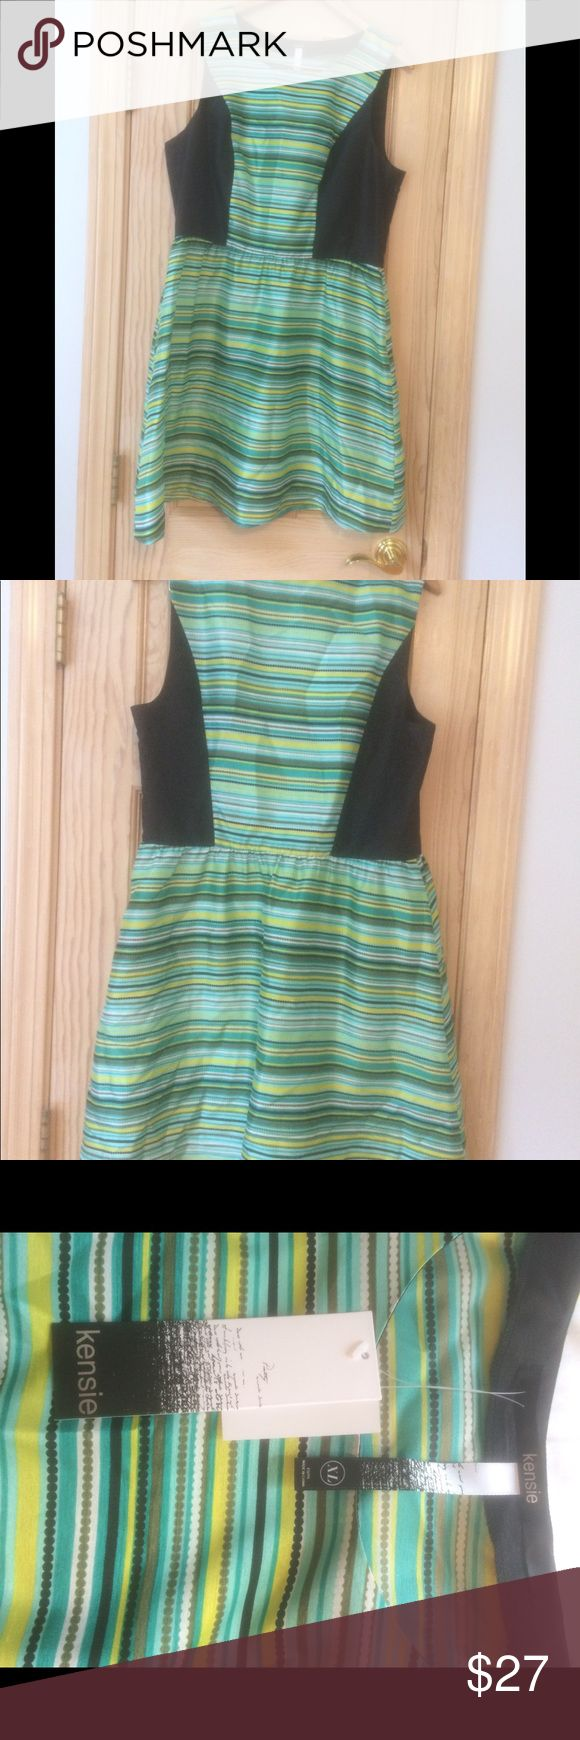 NWT Kensie Striped Party 🎉Dress This NWT Kensie for Macy's hot party dress has stripes and dots in greens, blues, yellows, and blacks. It is a dramatic statement piece Dress sure to turn heads. Kensie Dresses Midi